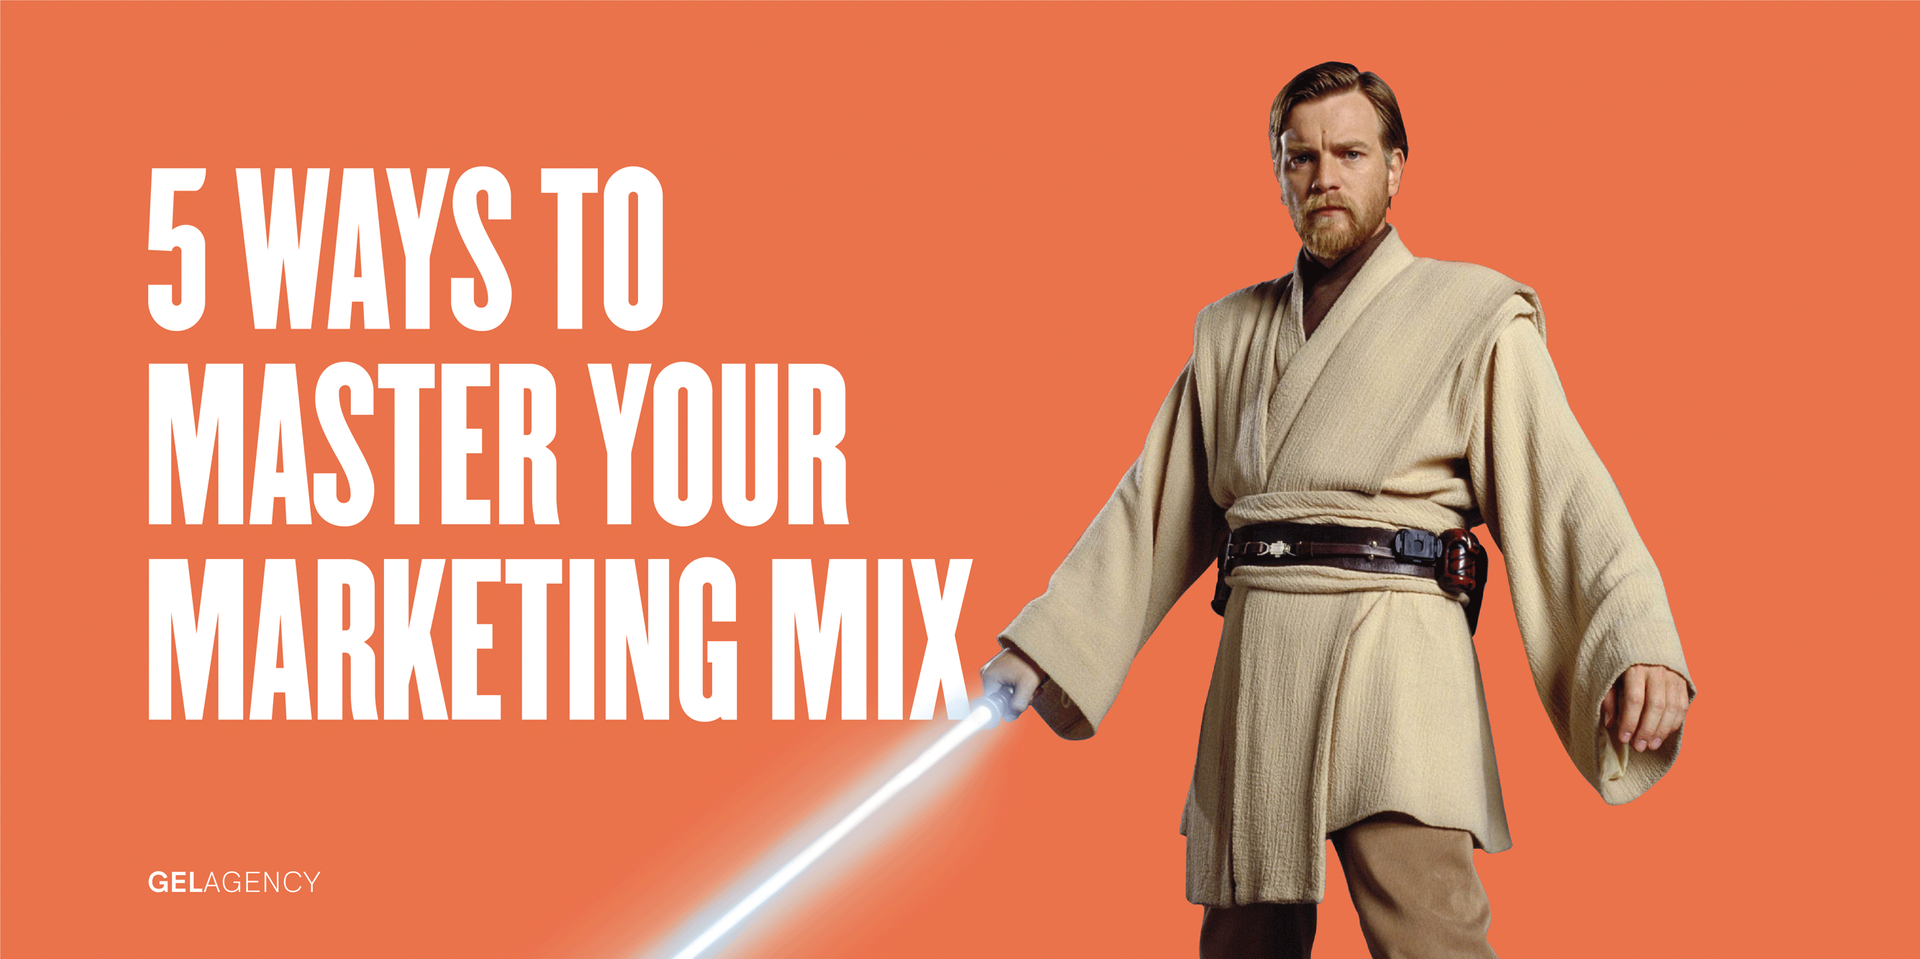 5 Ways to Master Your Marketing Mix